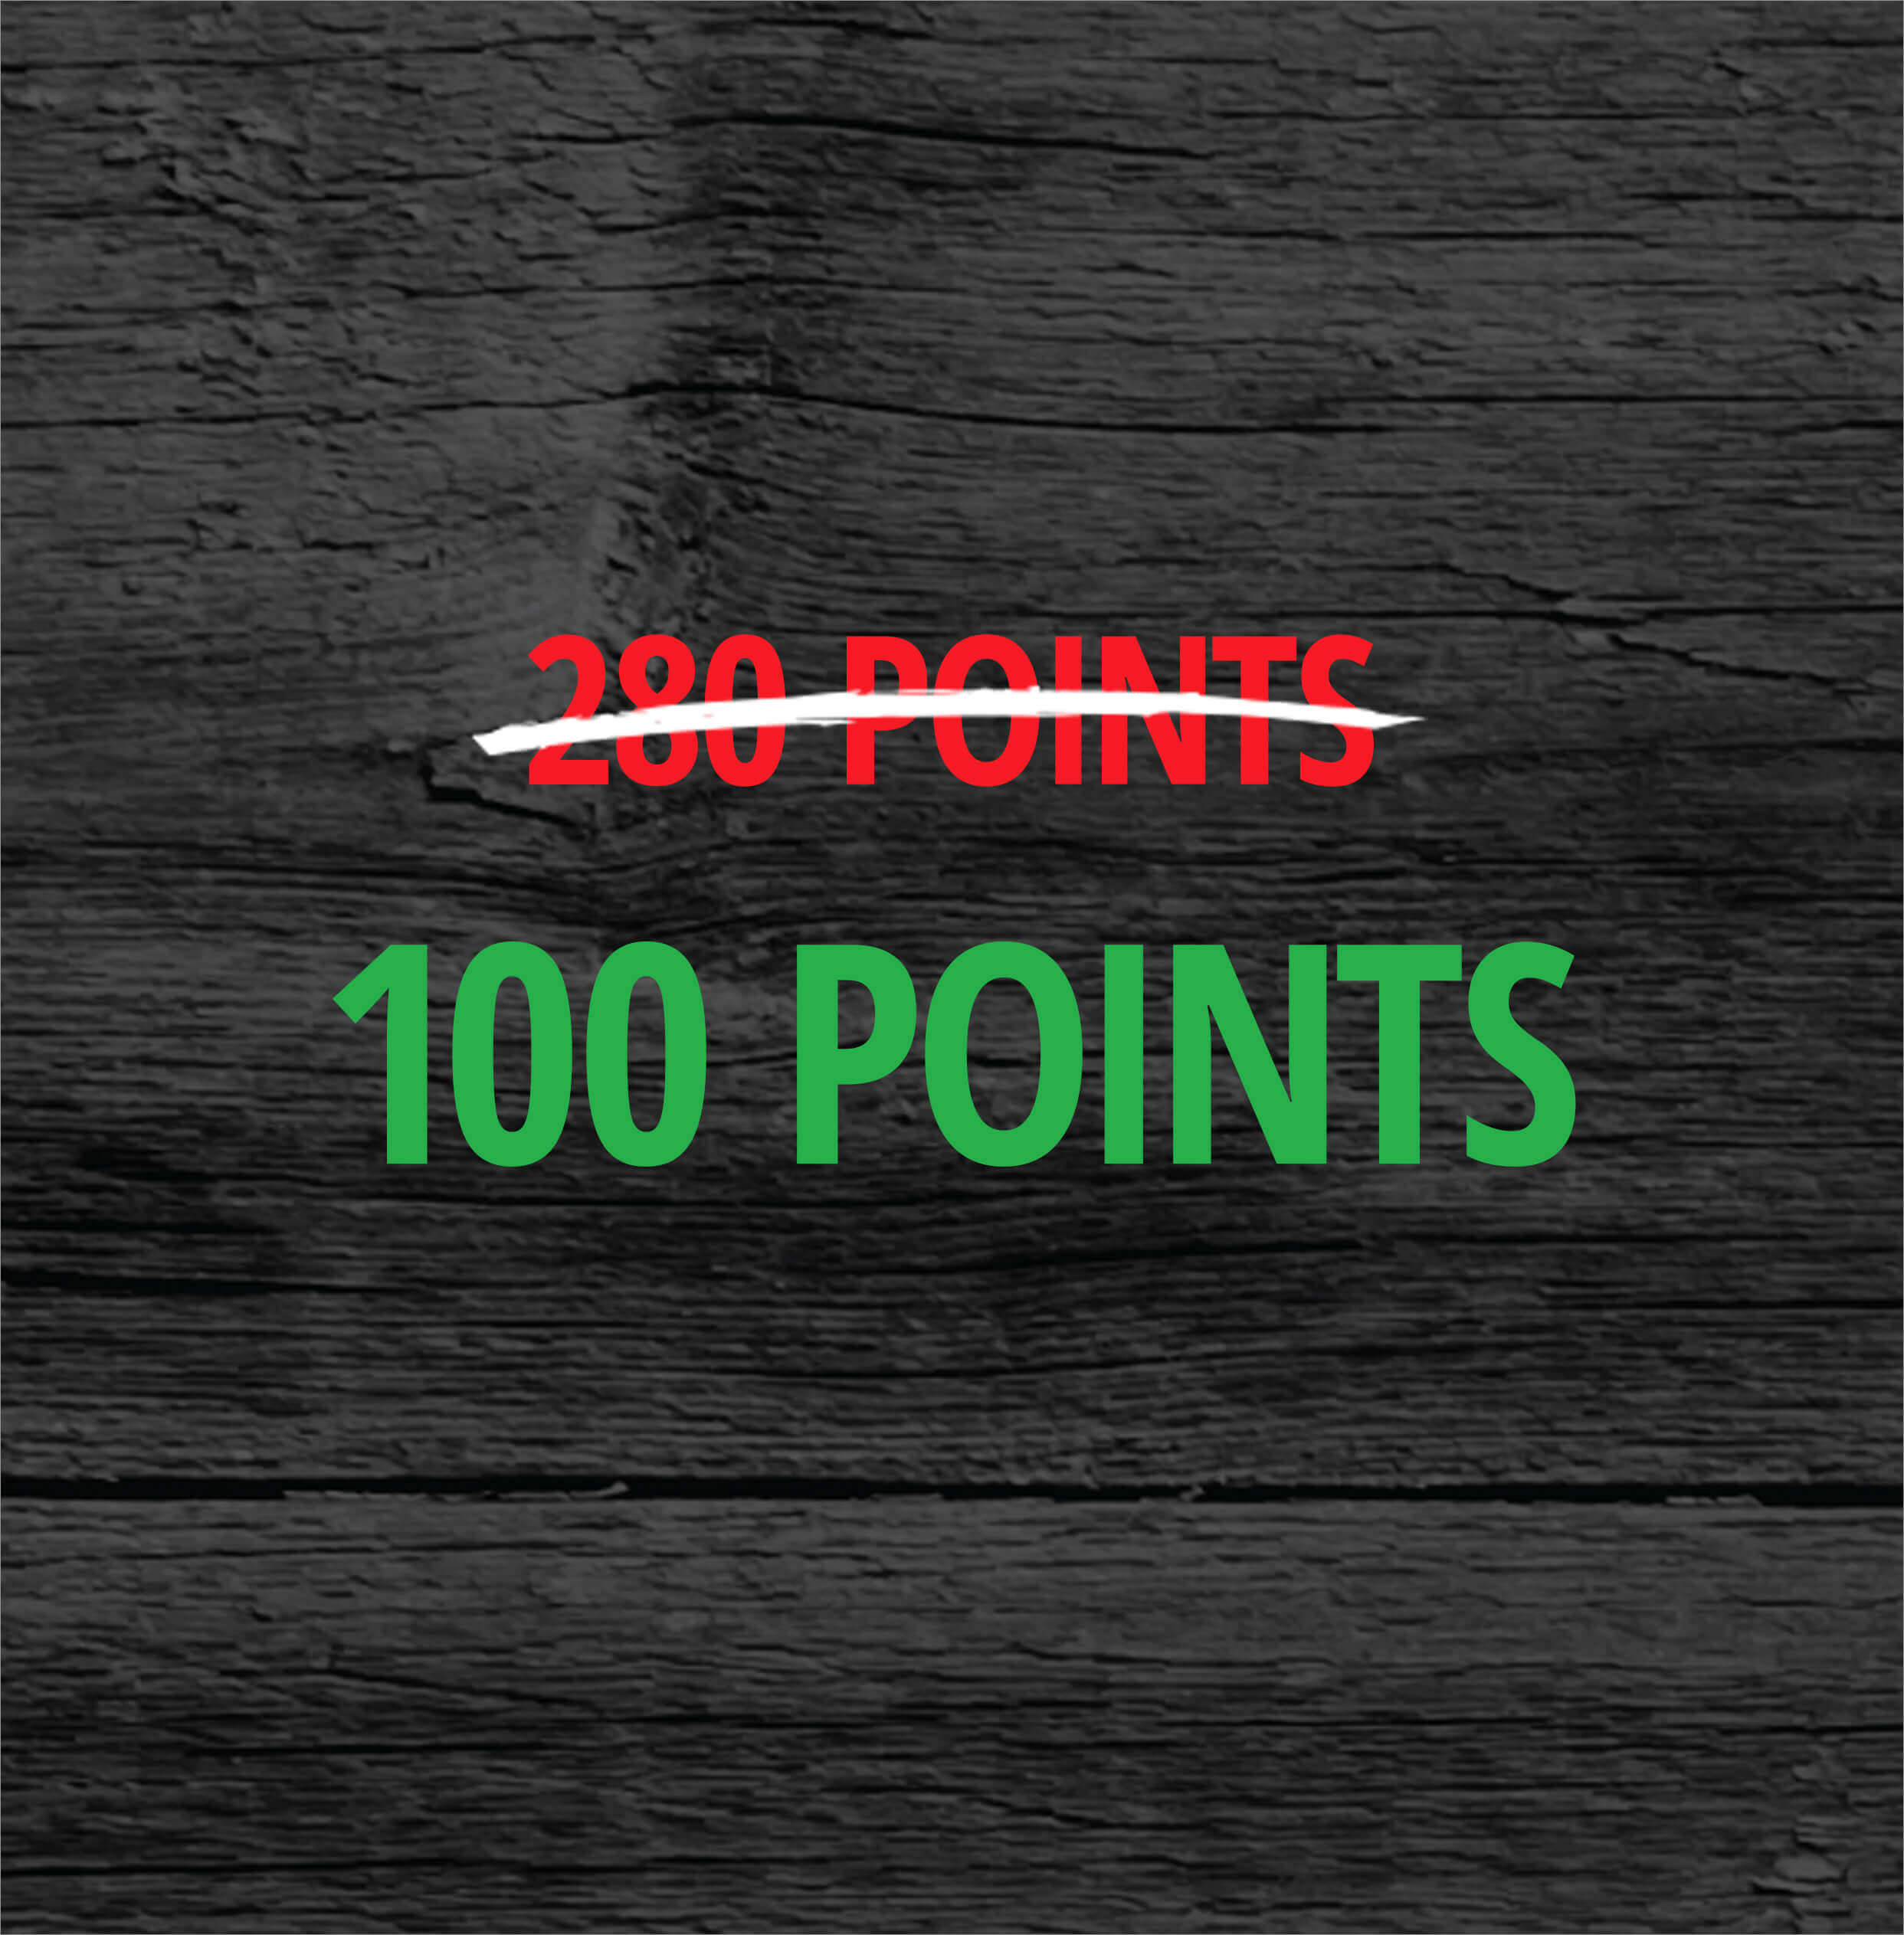 280 Points On Sale For 100 Points